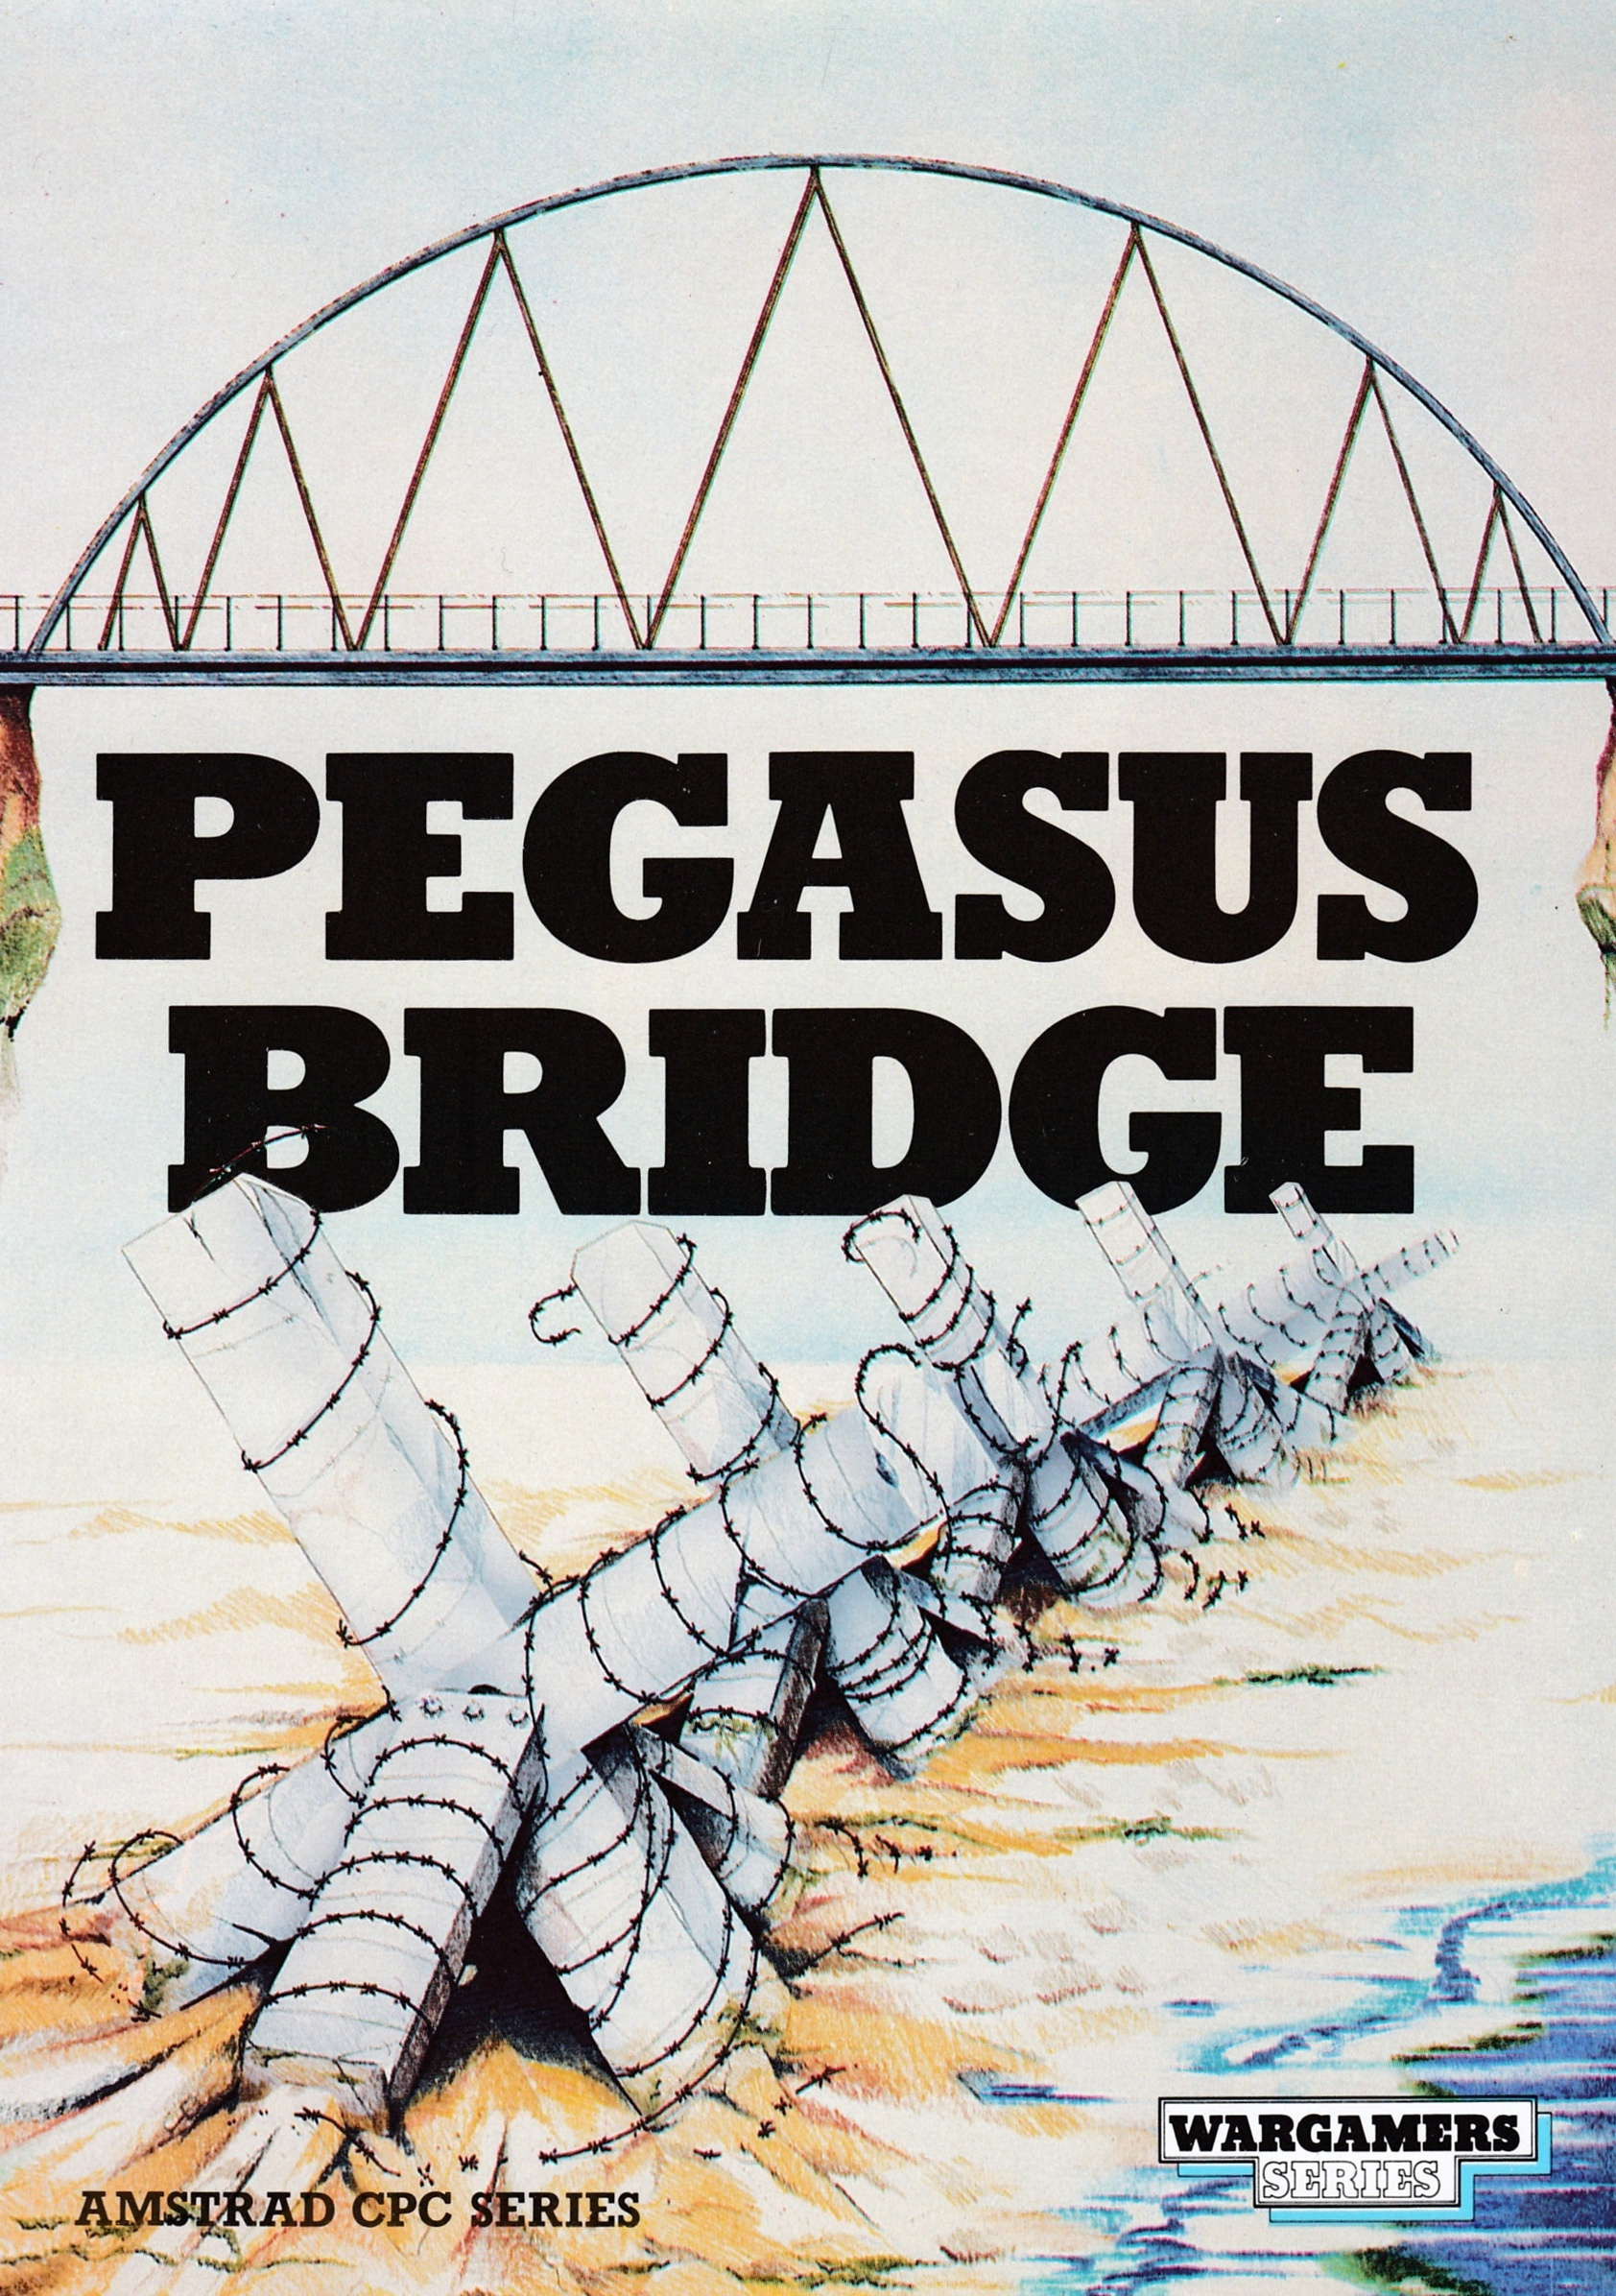 cover of the Amstrad CPC game Pegasus Bridge  by GameBase CPC